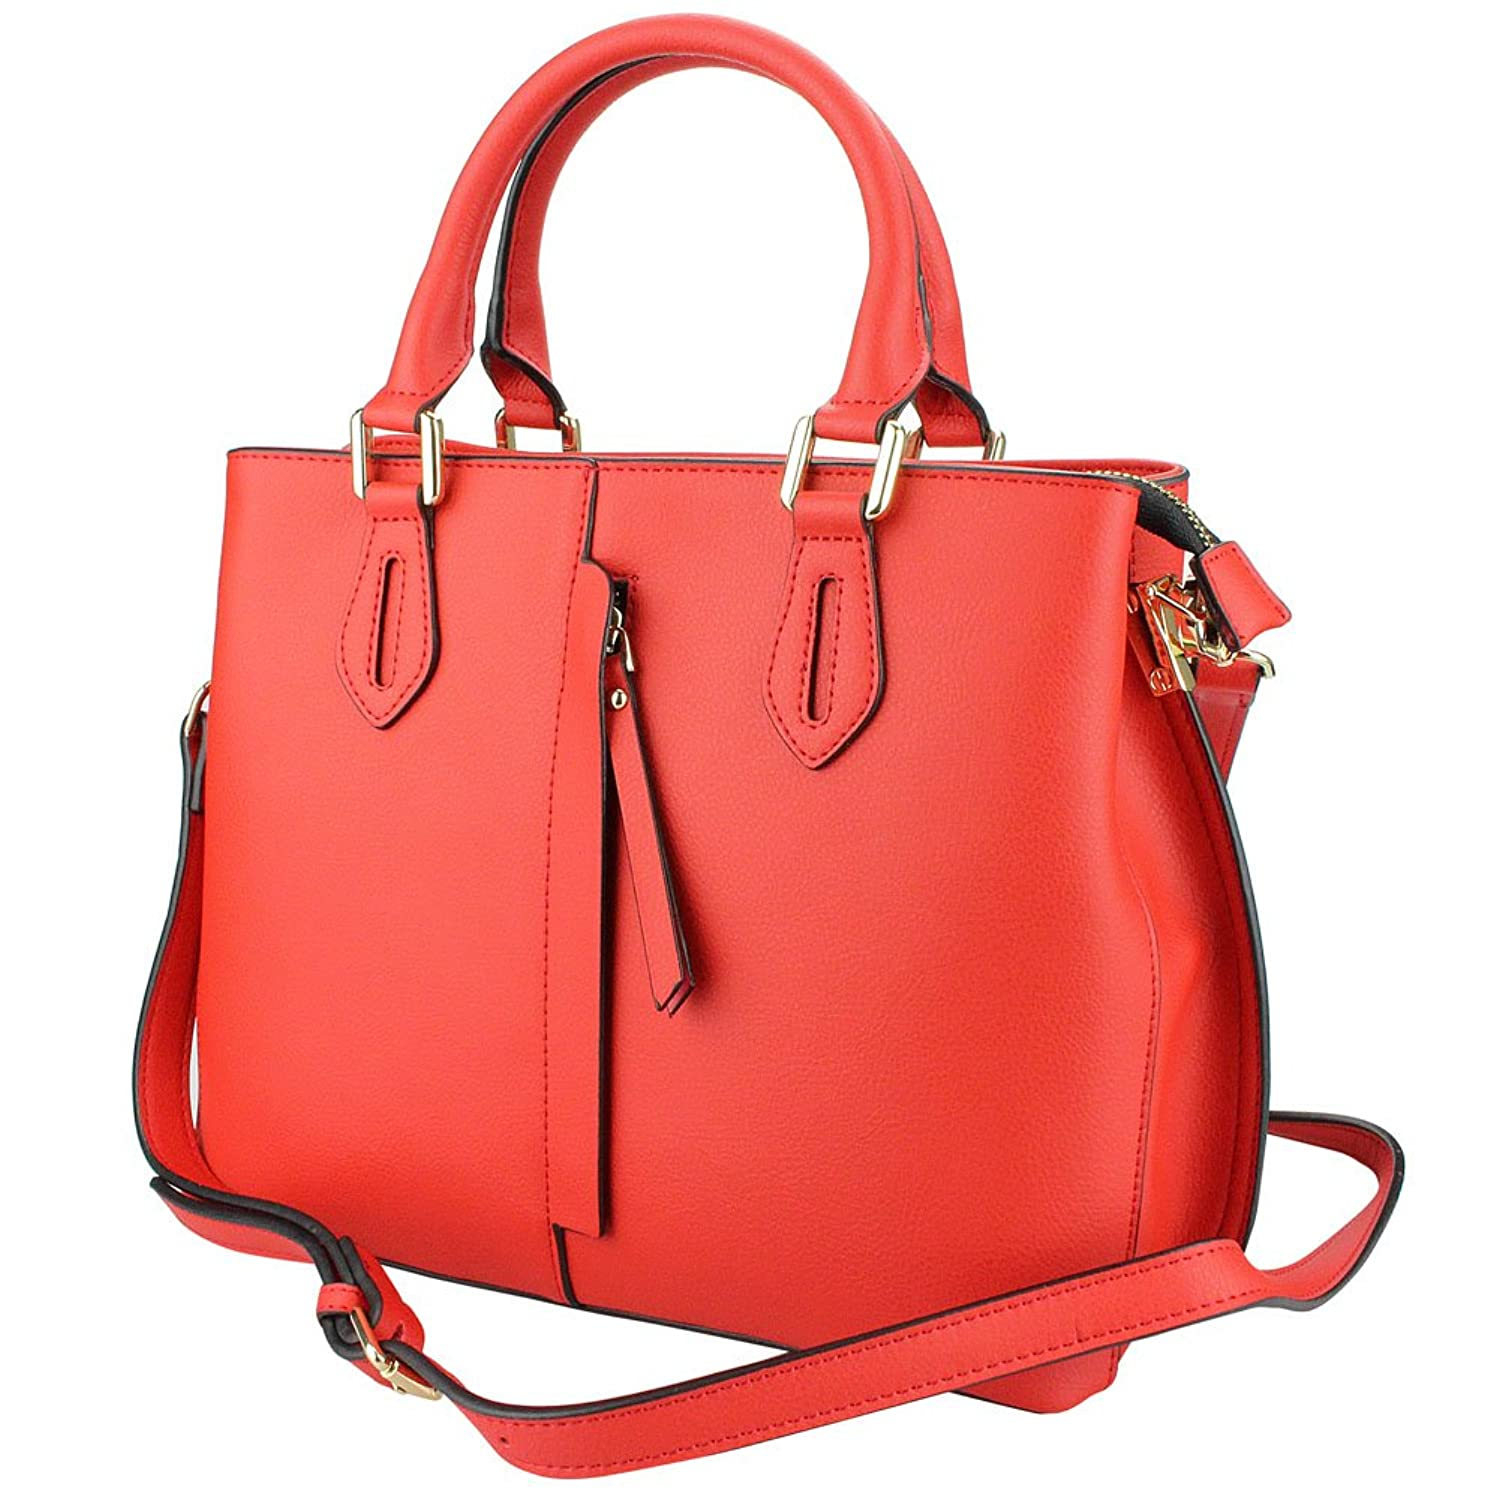 MuLier Large Handbag Front Vertical Zipper Pocket Real Leather Women Fashion Shoulder Bag Red